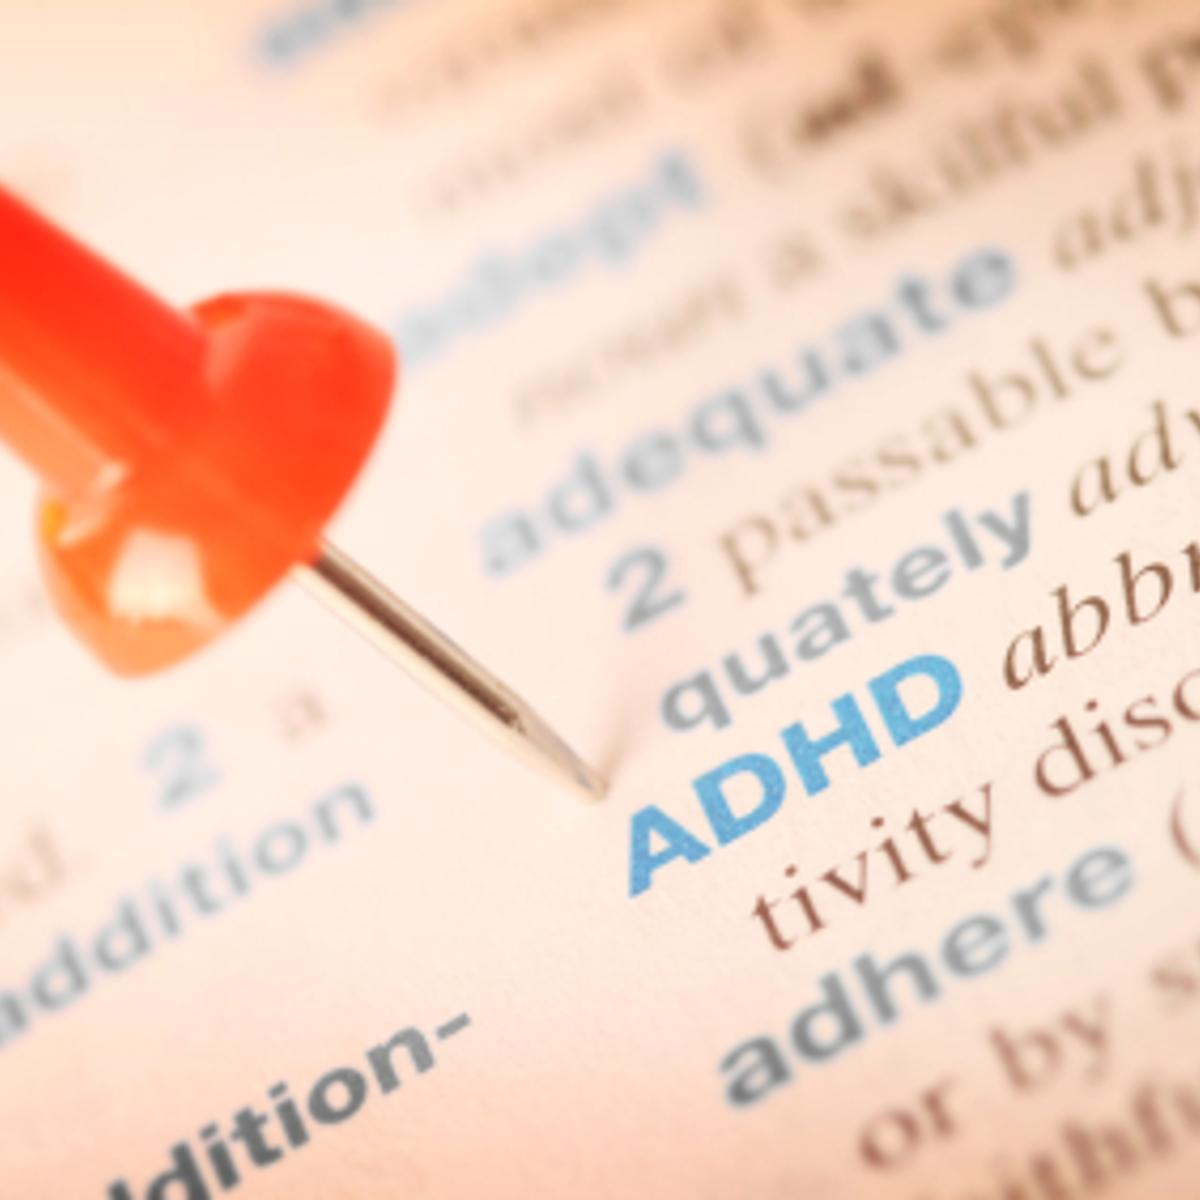 Decades Of Failing To Recognize Adhd In >> The Secret Signs Of Undiagnosed Adult Attention Deficit Disorder